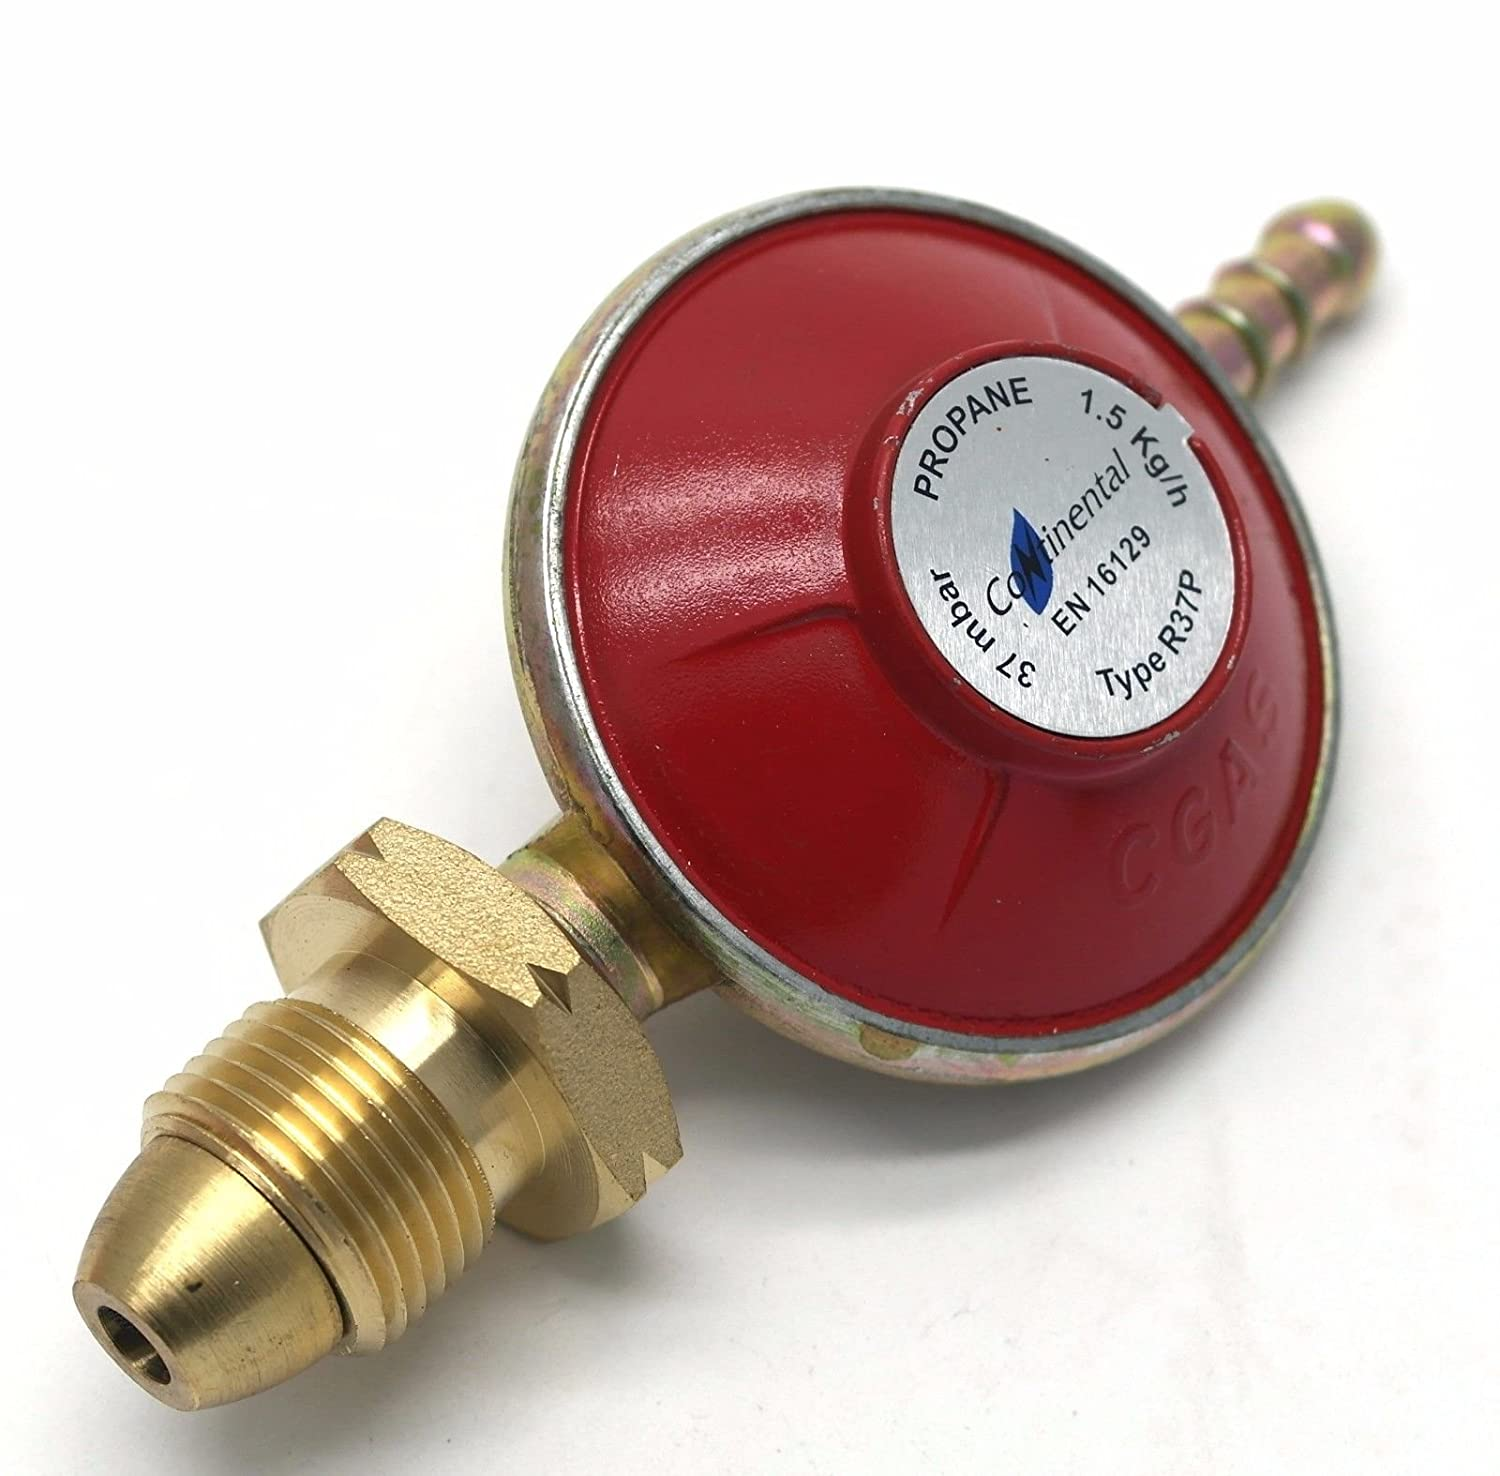 Propane Gas Regulator 37Mbar Standard Screw Type 1.5 Kg/H Fits Calor / Flogas continental